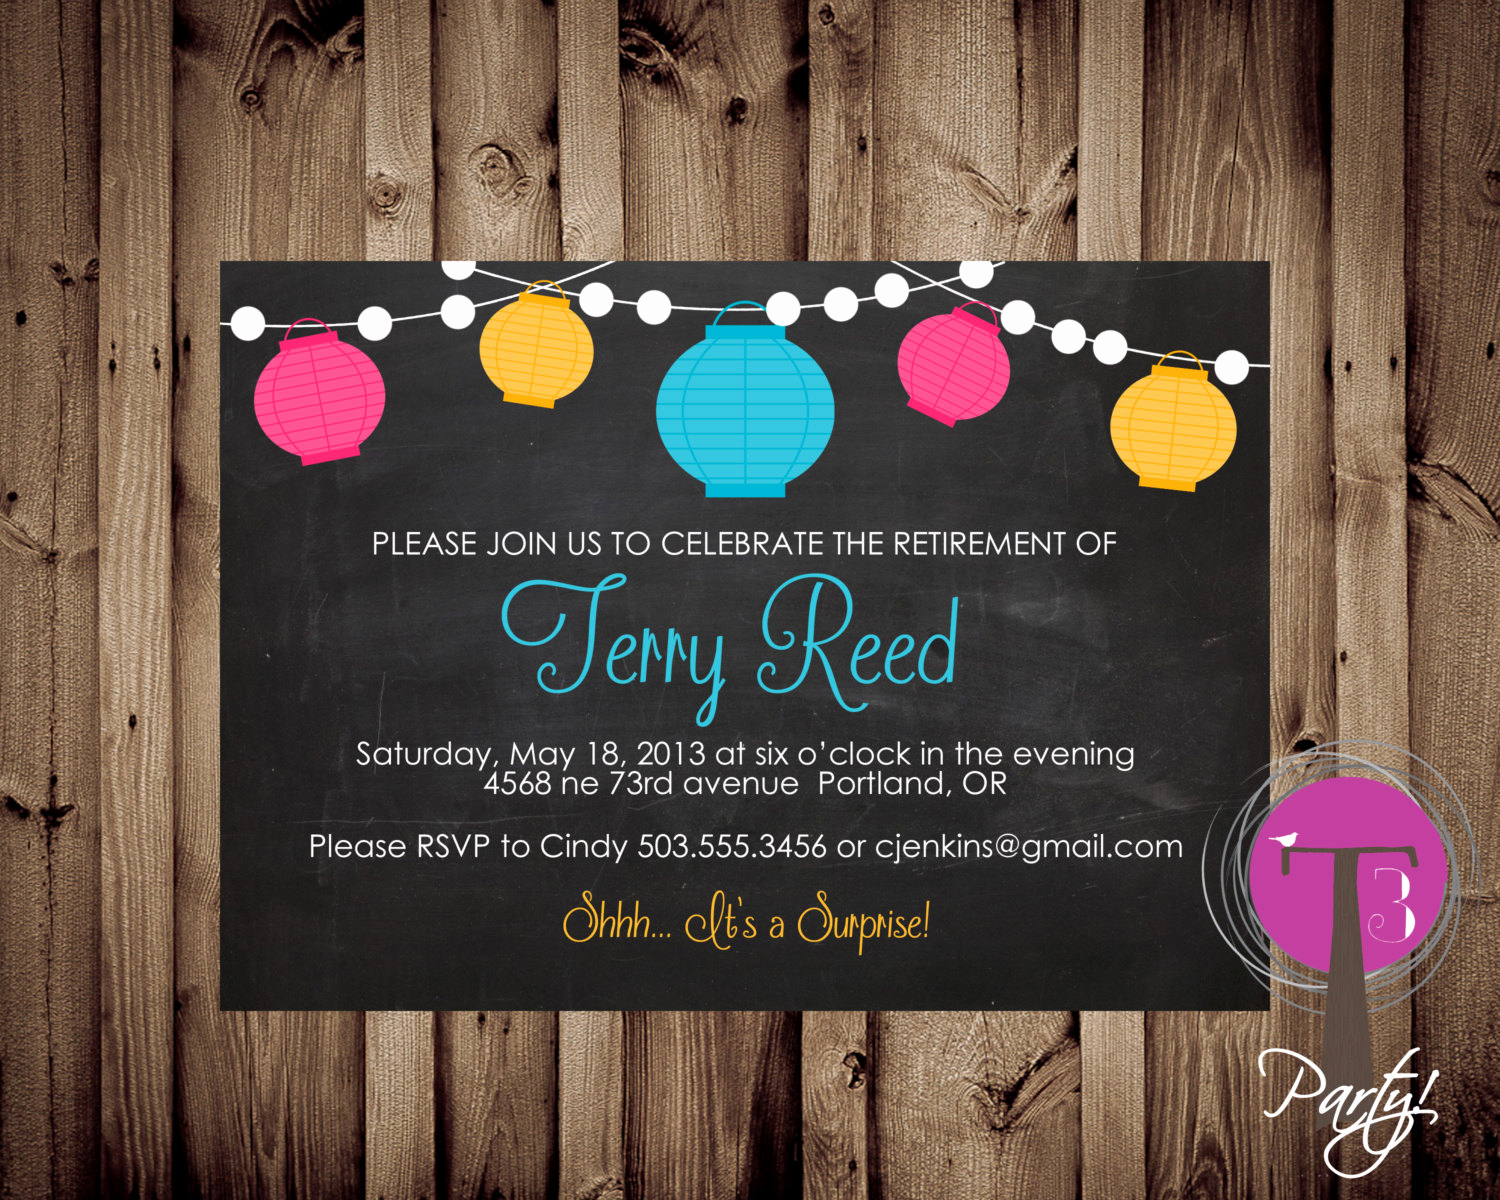 Retirement Party Invitation Wording Funny Inspirational Retirement Party Invitation Dinner Party Retirement Party